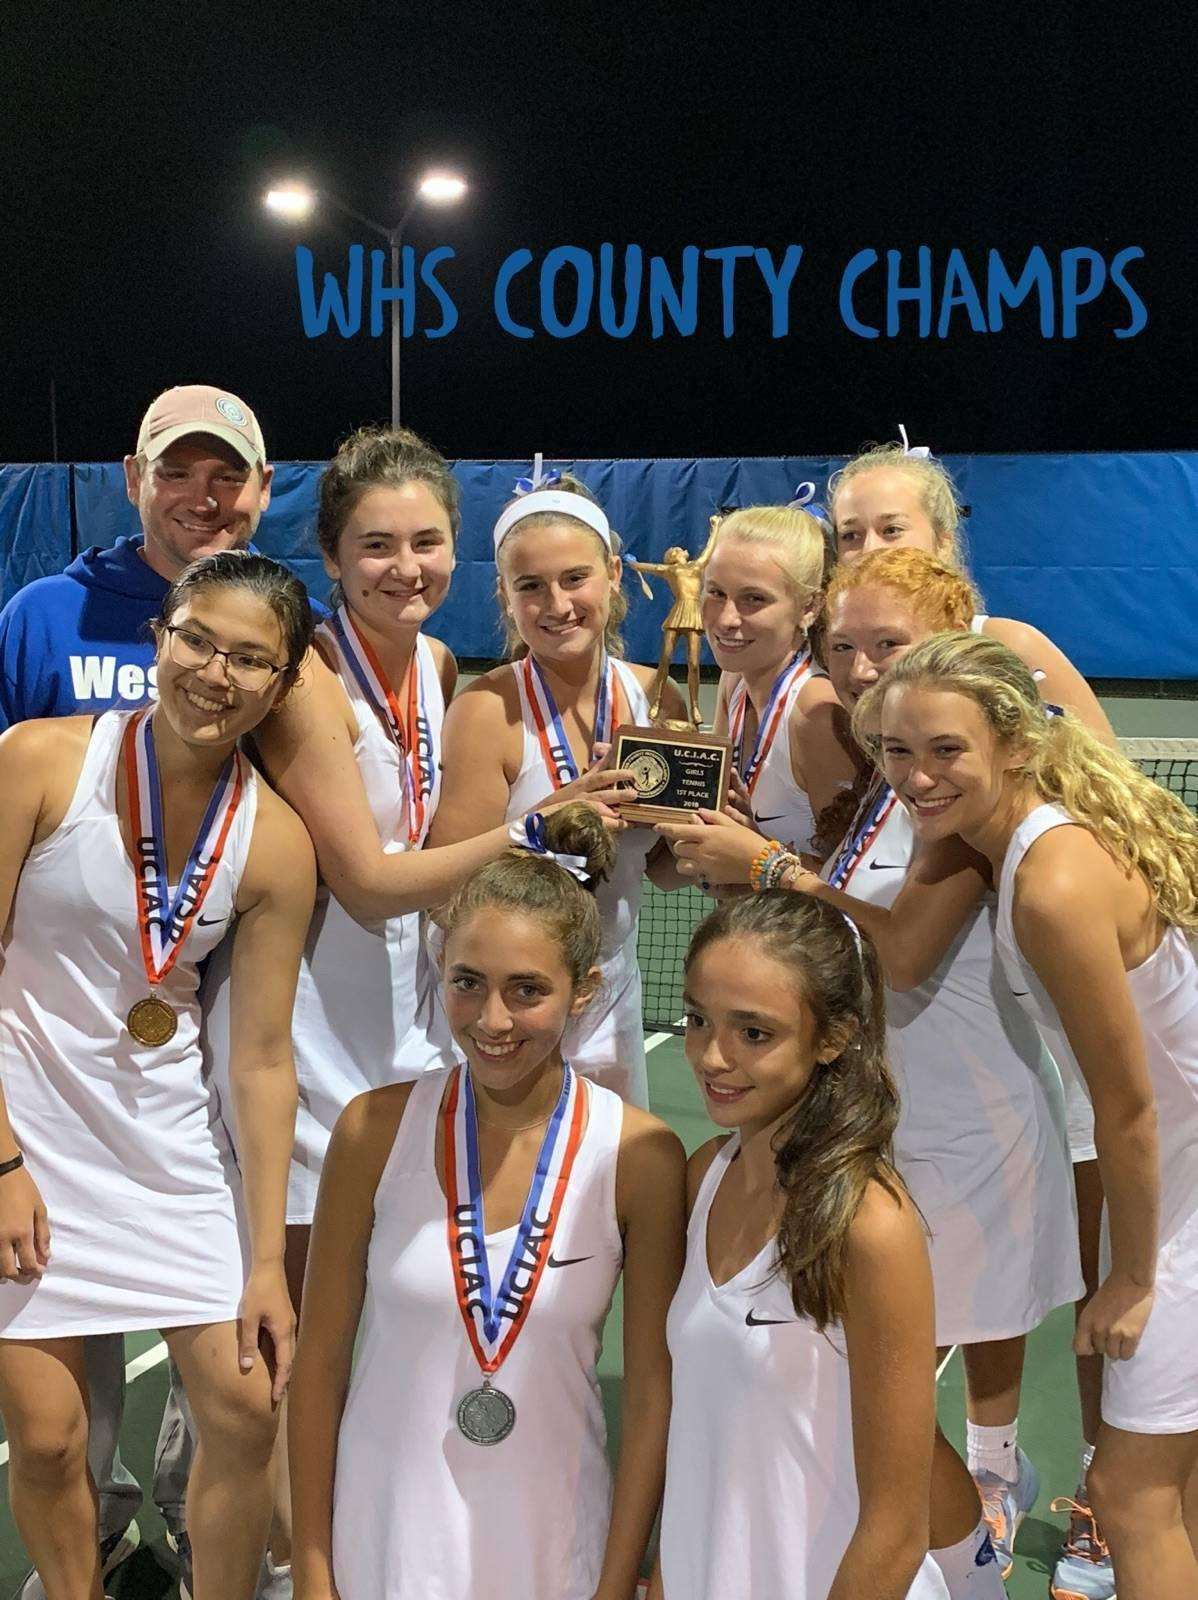 WHS Ties with Kent Place for County Title